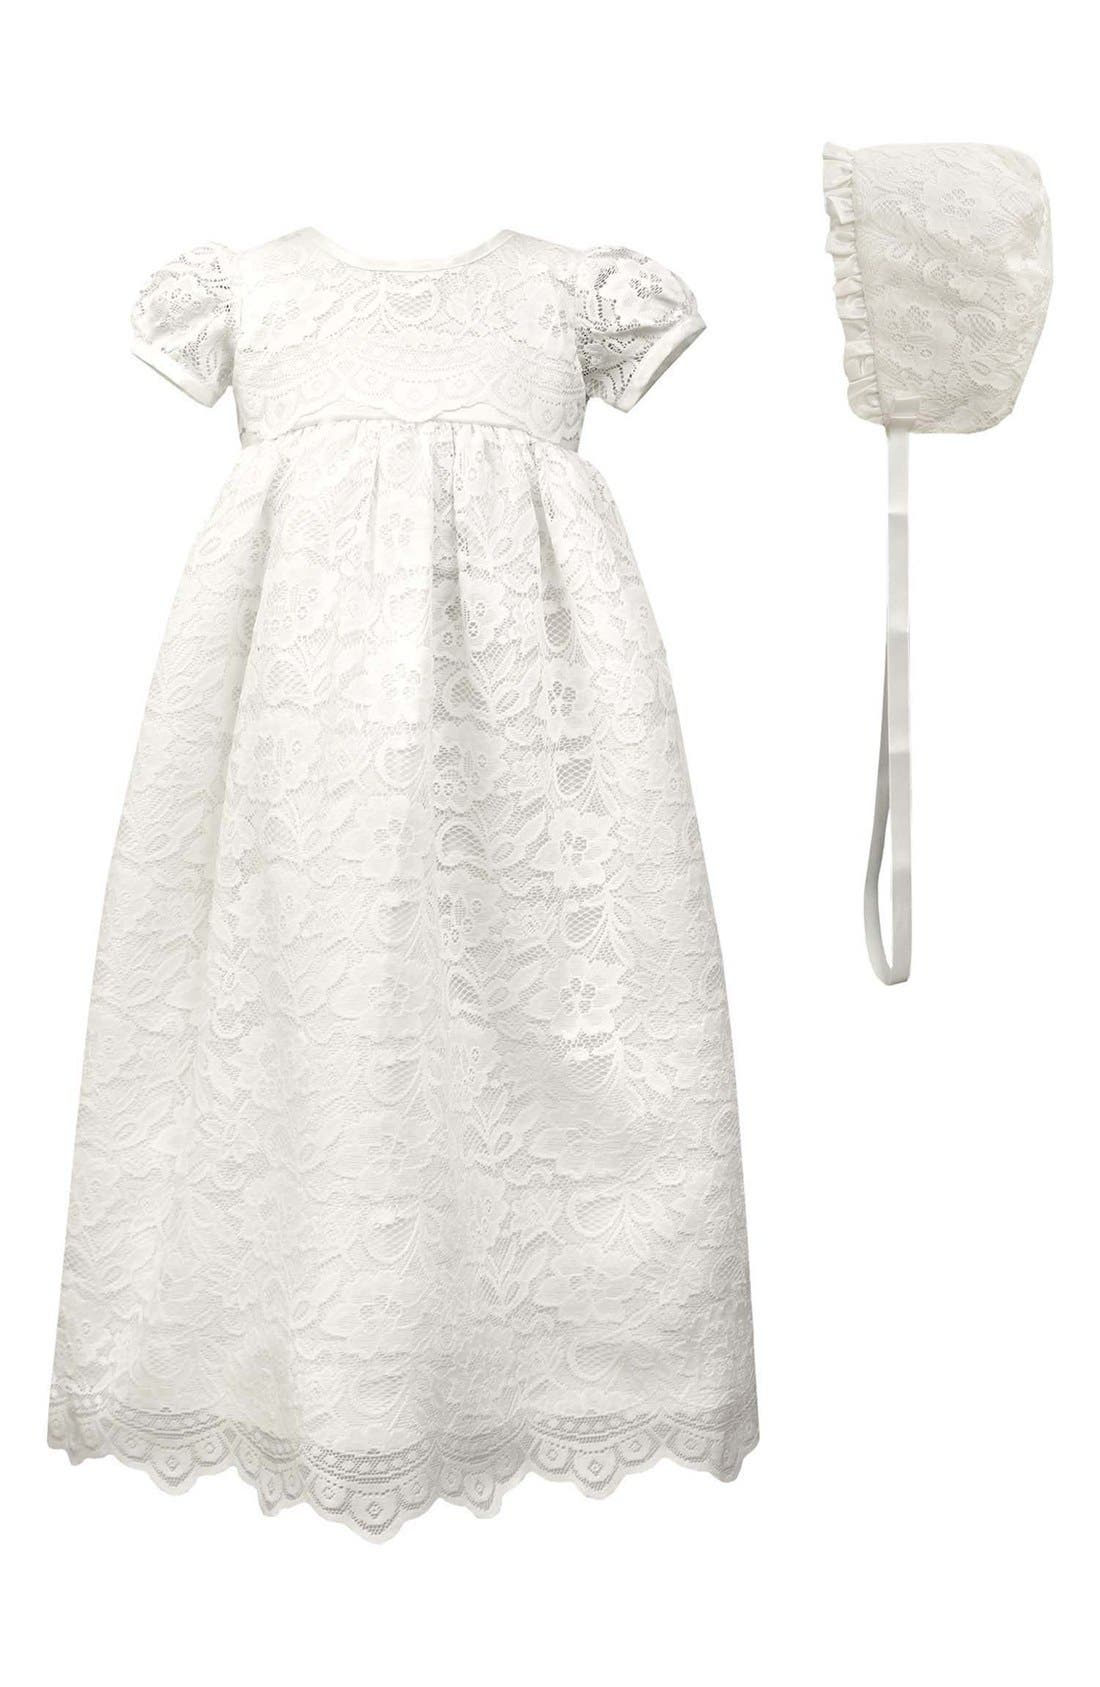 Scalloped Lace Christening Gown & Bonnet,                         Main,                         color, WHITE